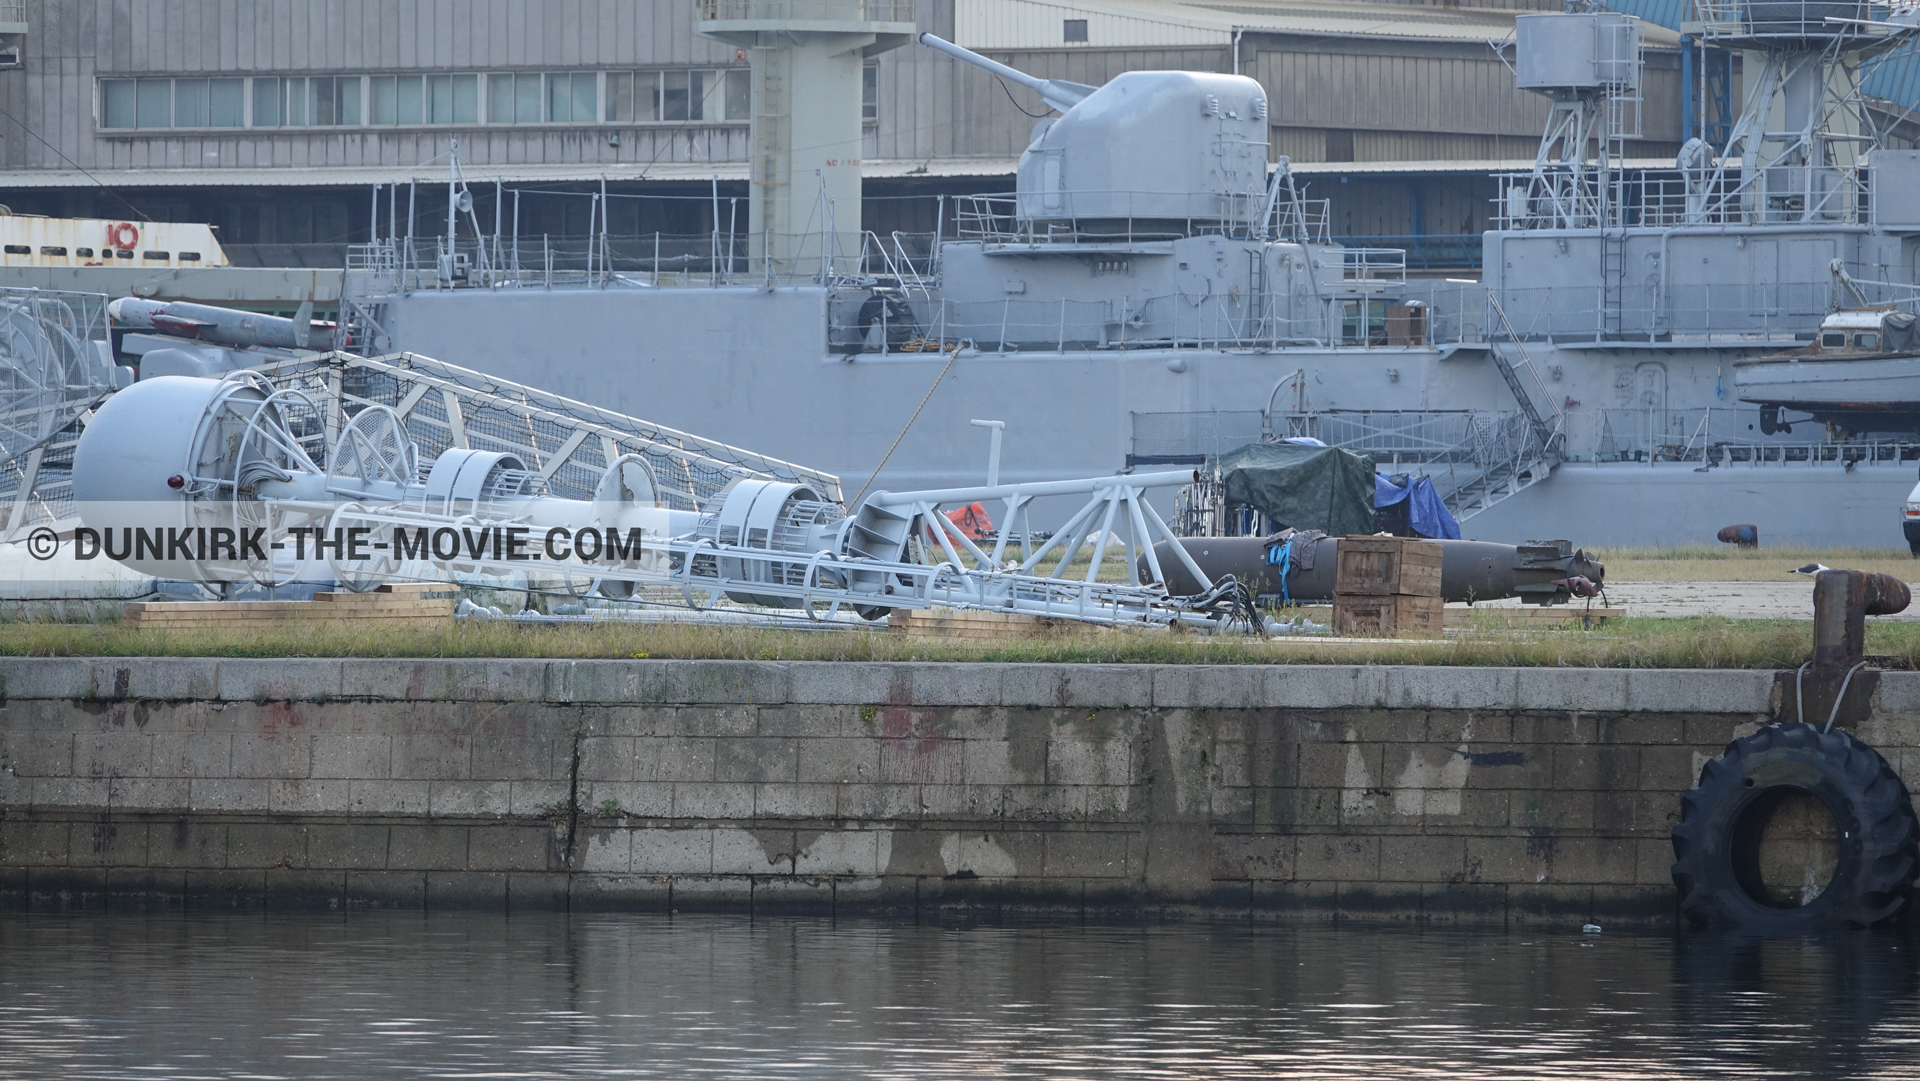 Picture with accessories, Maillé-Brézé - D36 - D54,  from behind the scene of the Dunkirk movie by Nolan